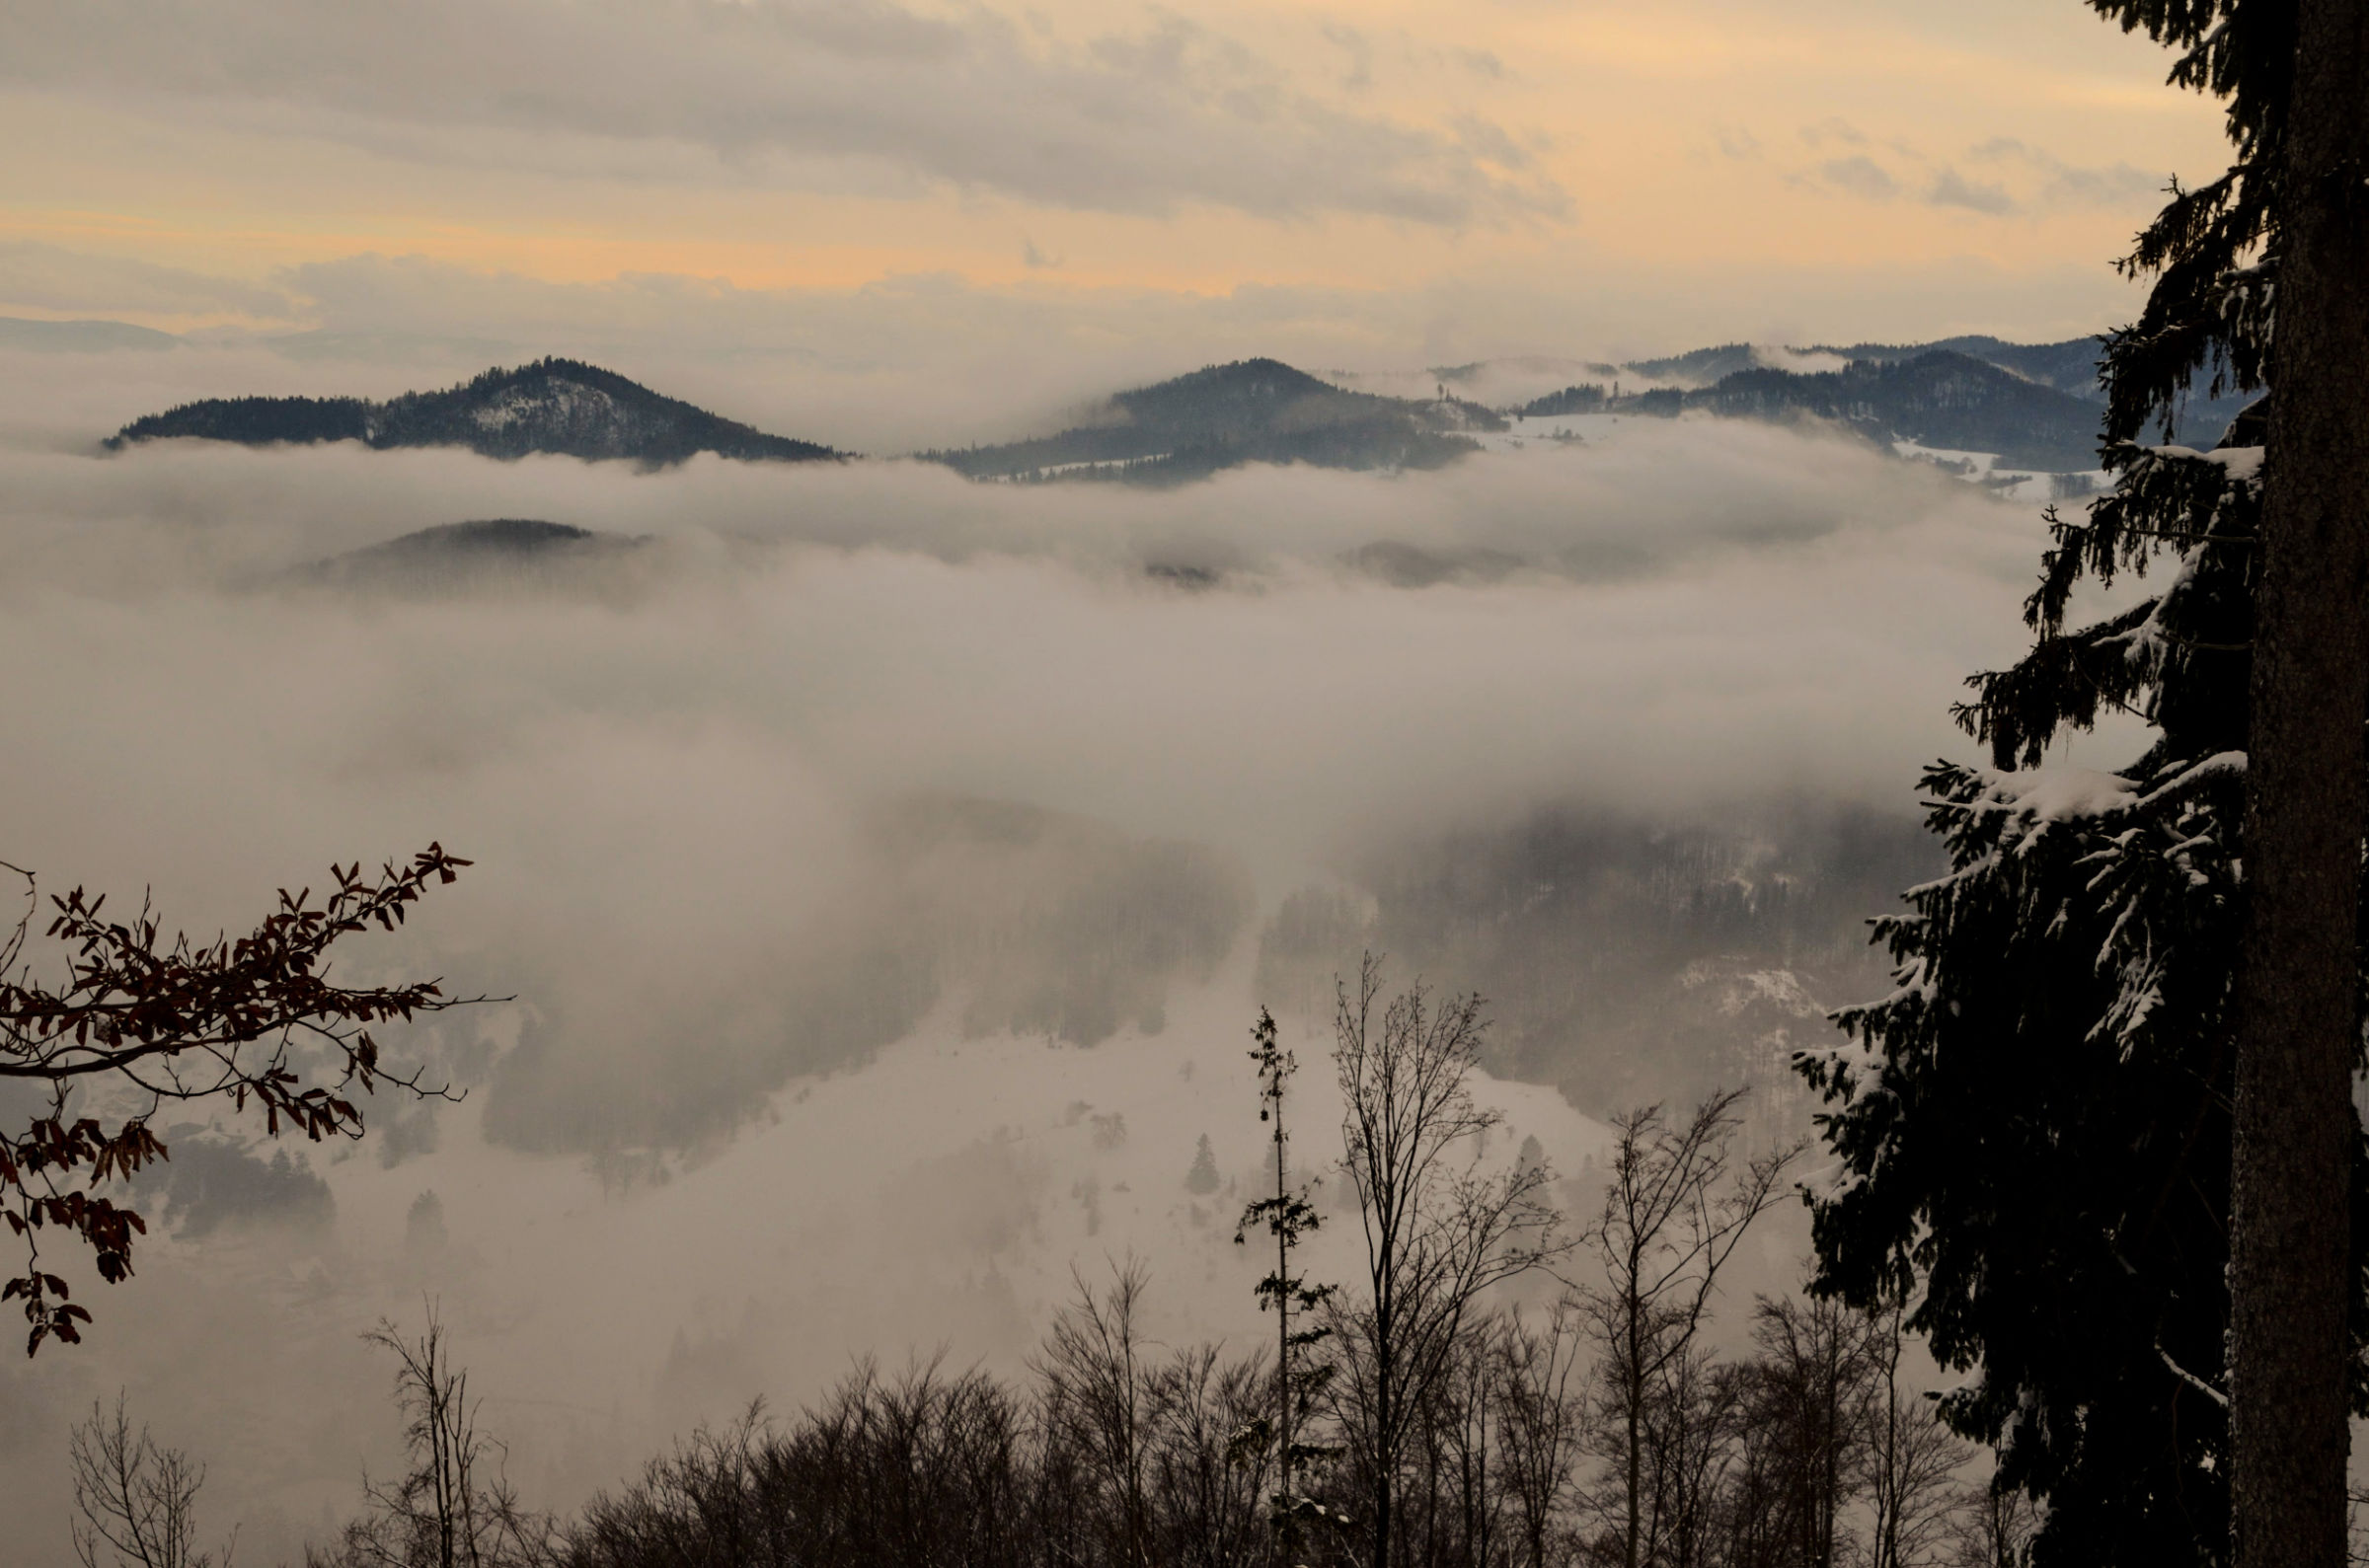 Looking out over the mountains around Banska Bystrica from the hill above our property